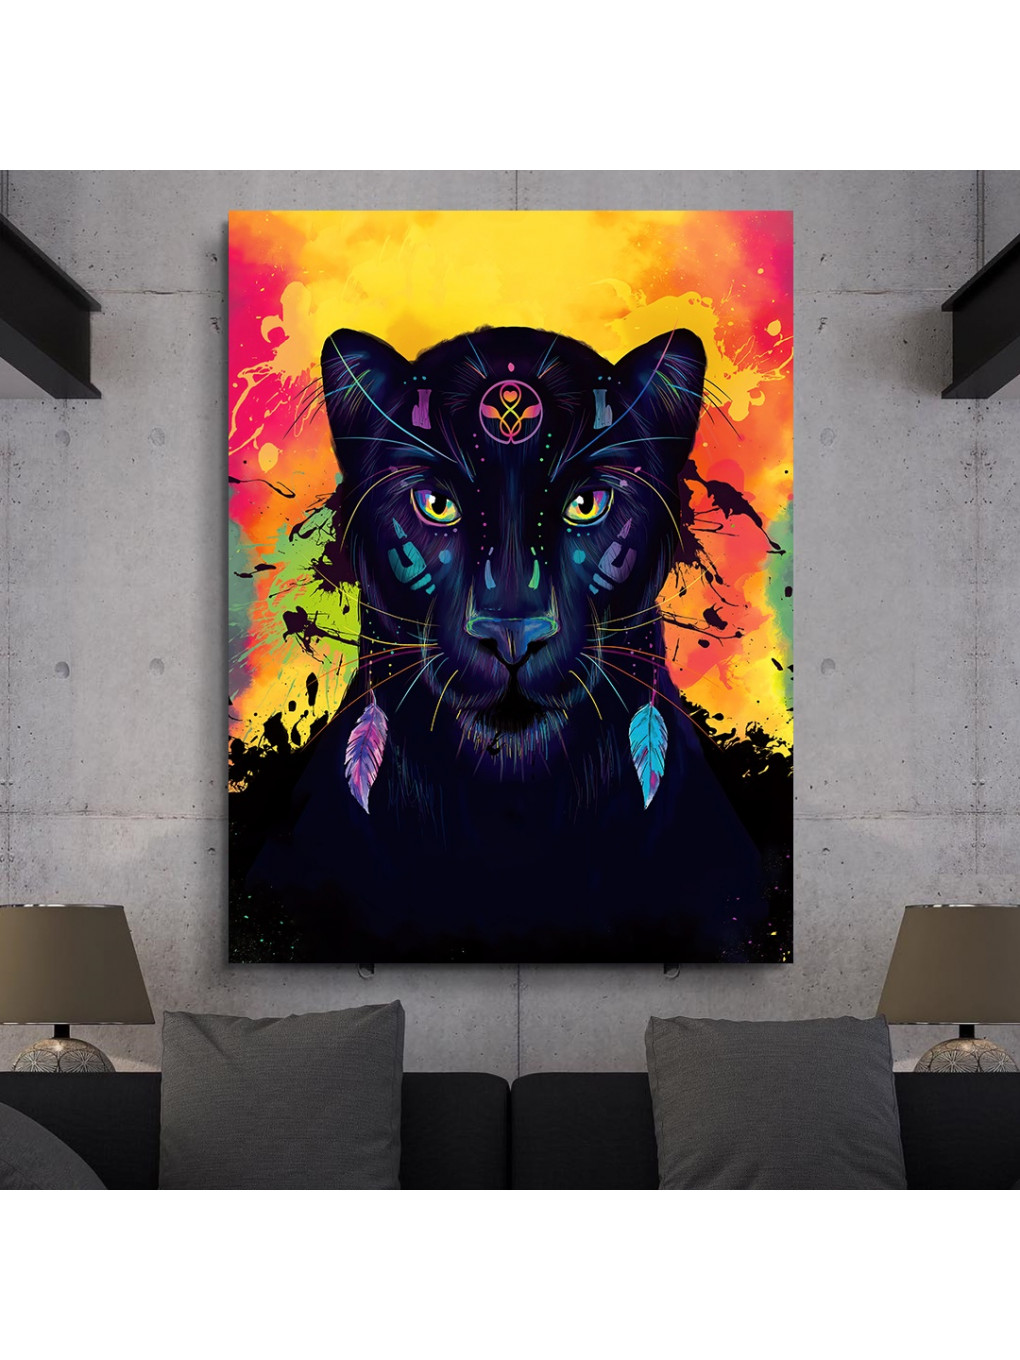 Black Panther_BLK128_4